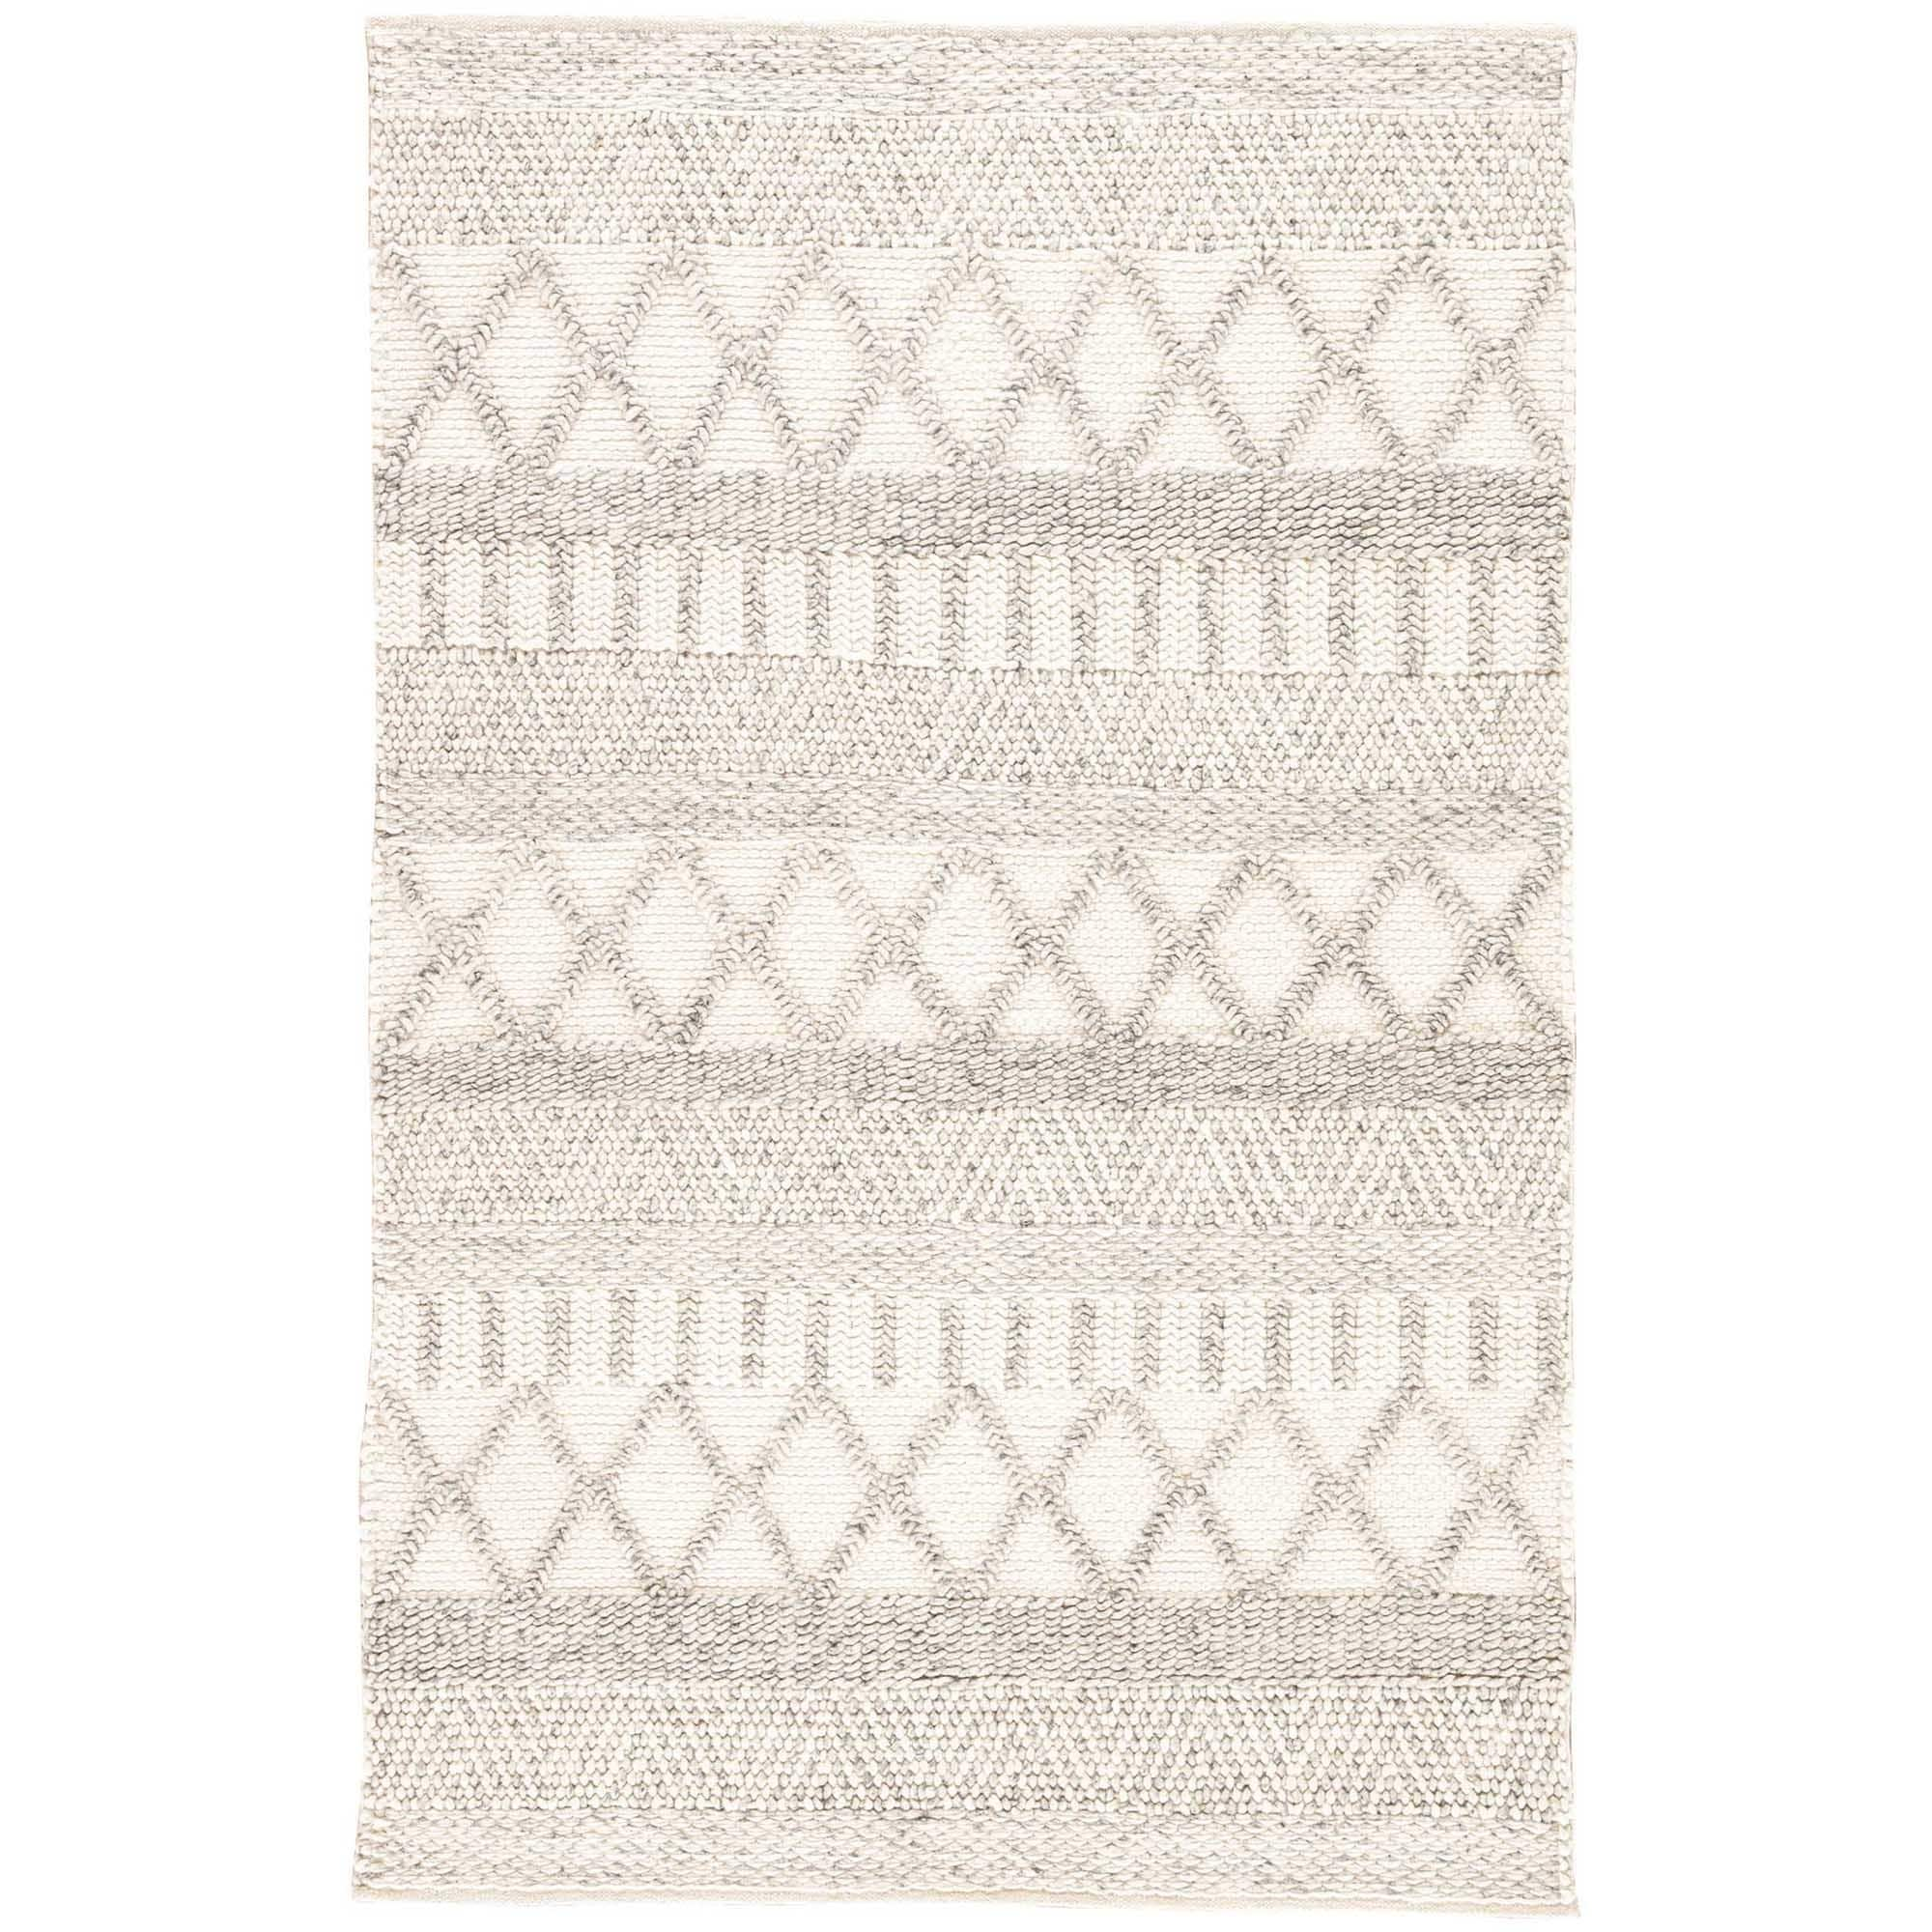 Shop Janson Handmade Geometric Gray White Area Rug 5 X 8 5 X